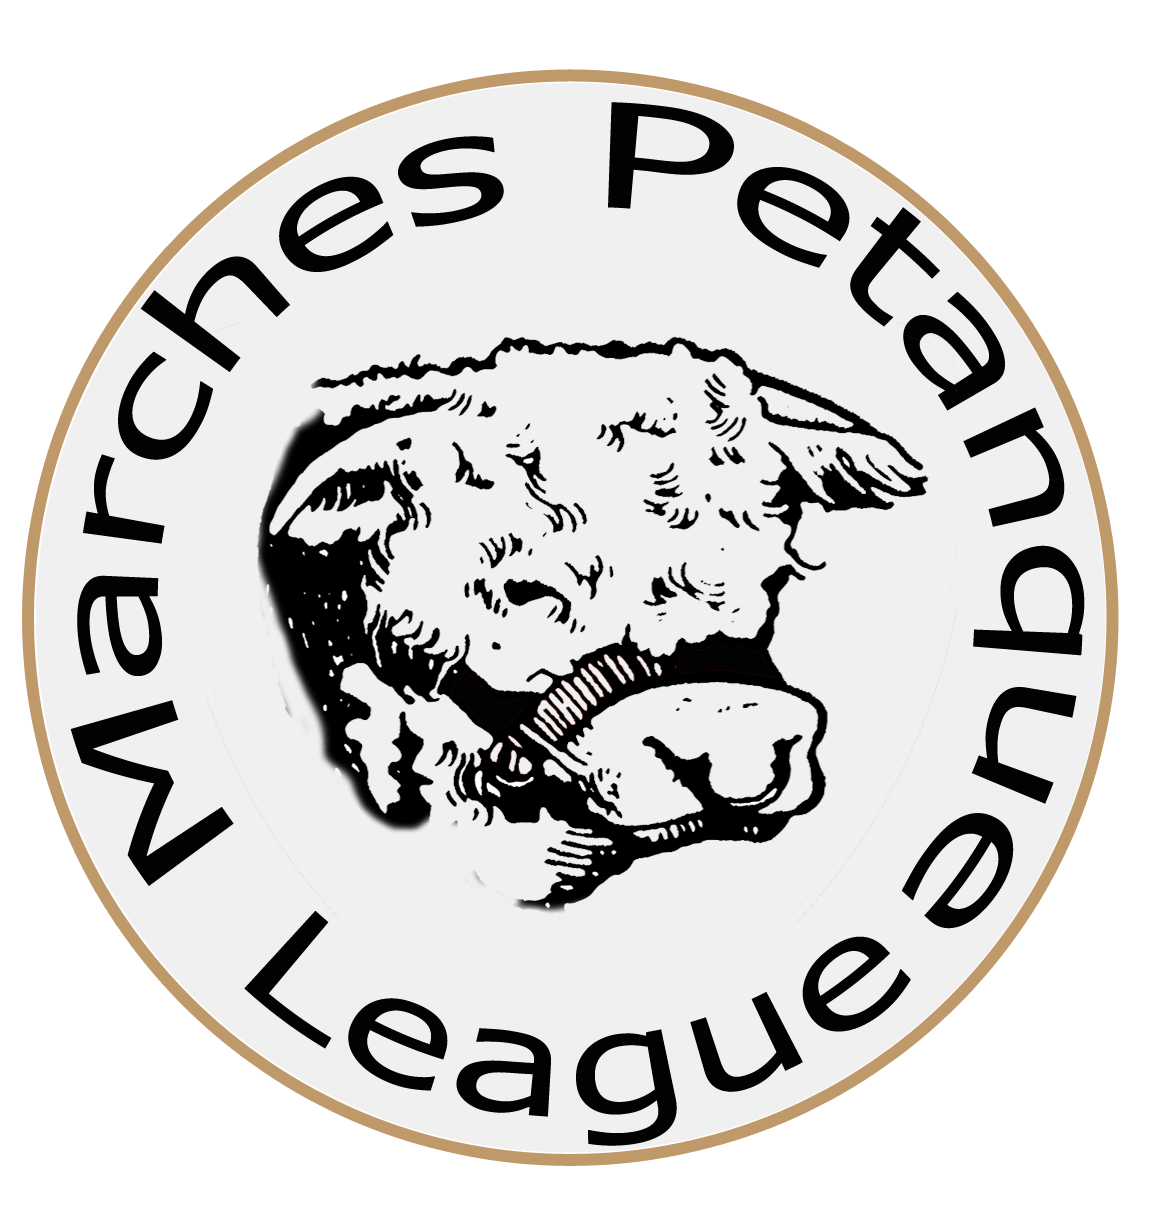 hereford-petanque-logo-footer